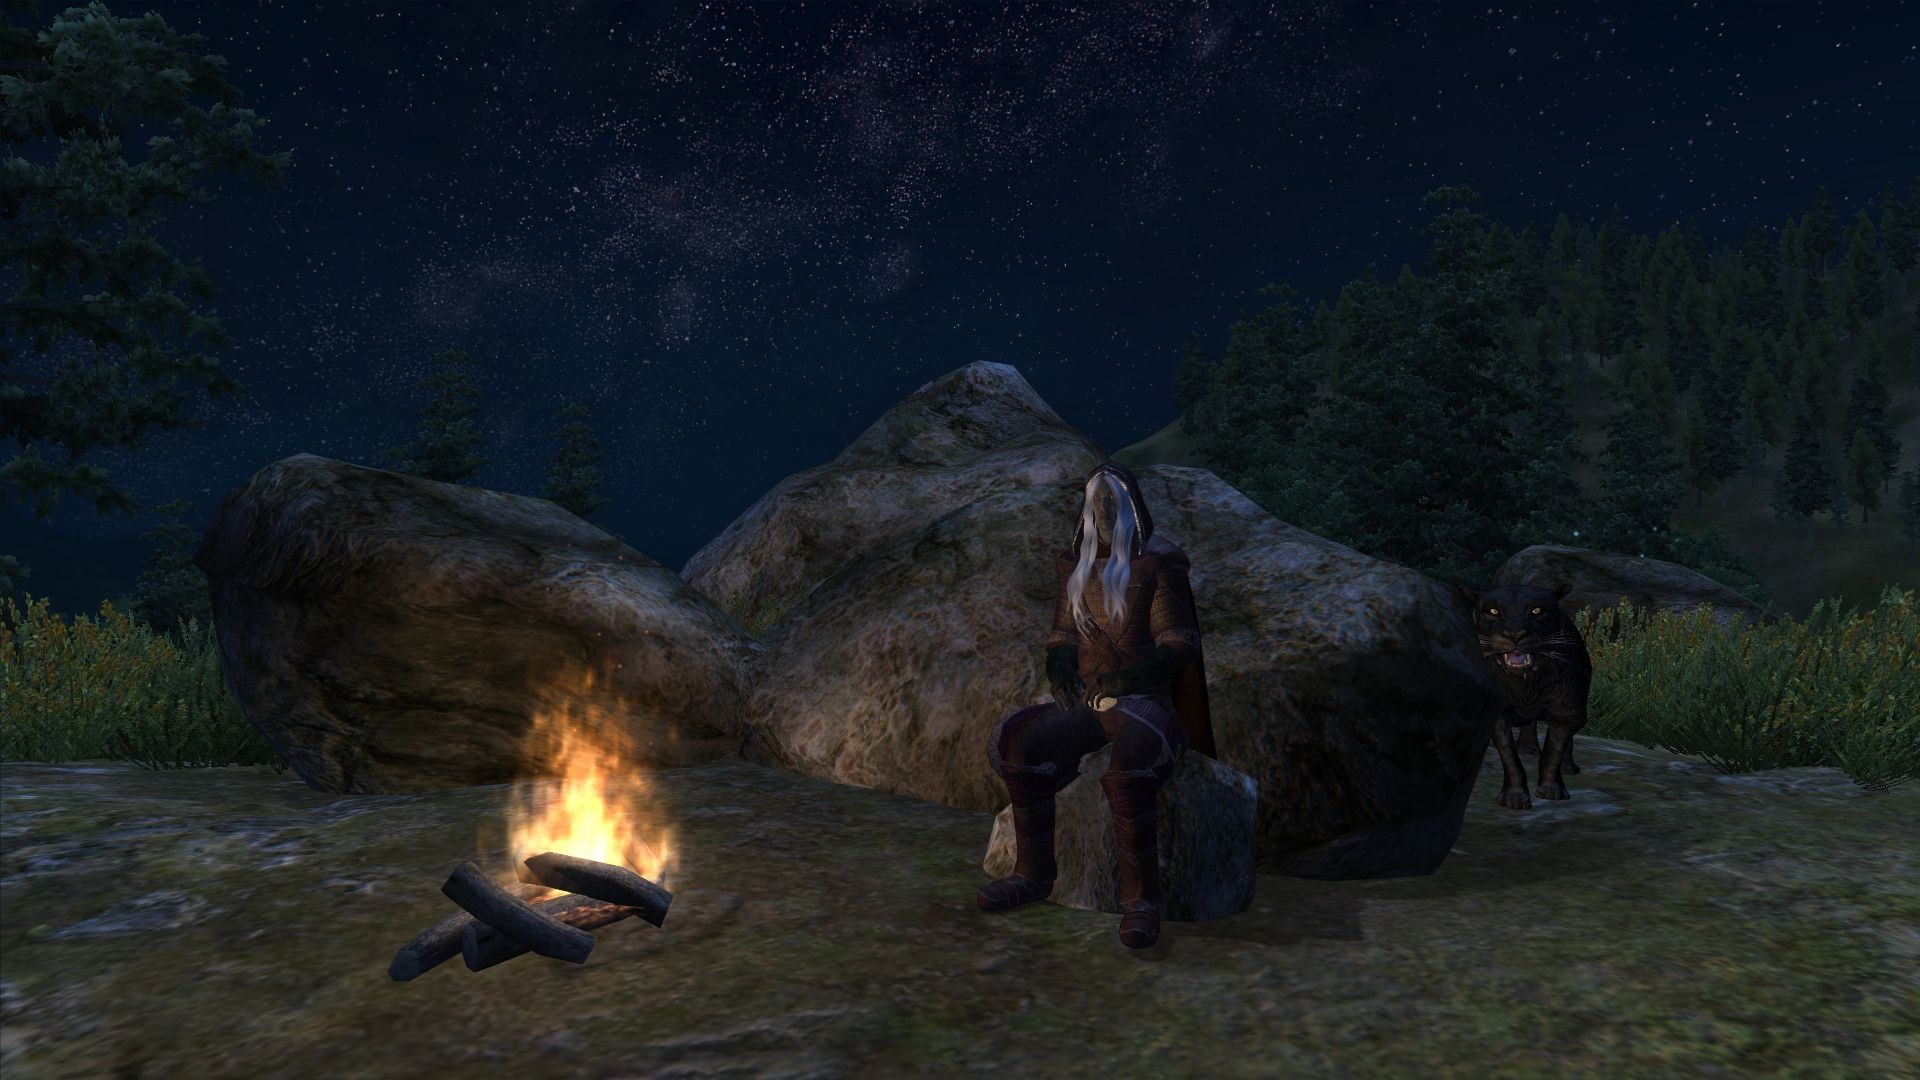 A night out in the wilderness with Drizzt and Guenhywar